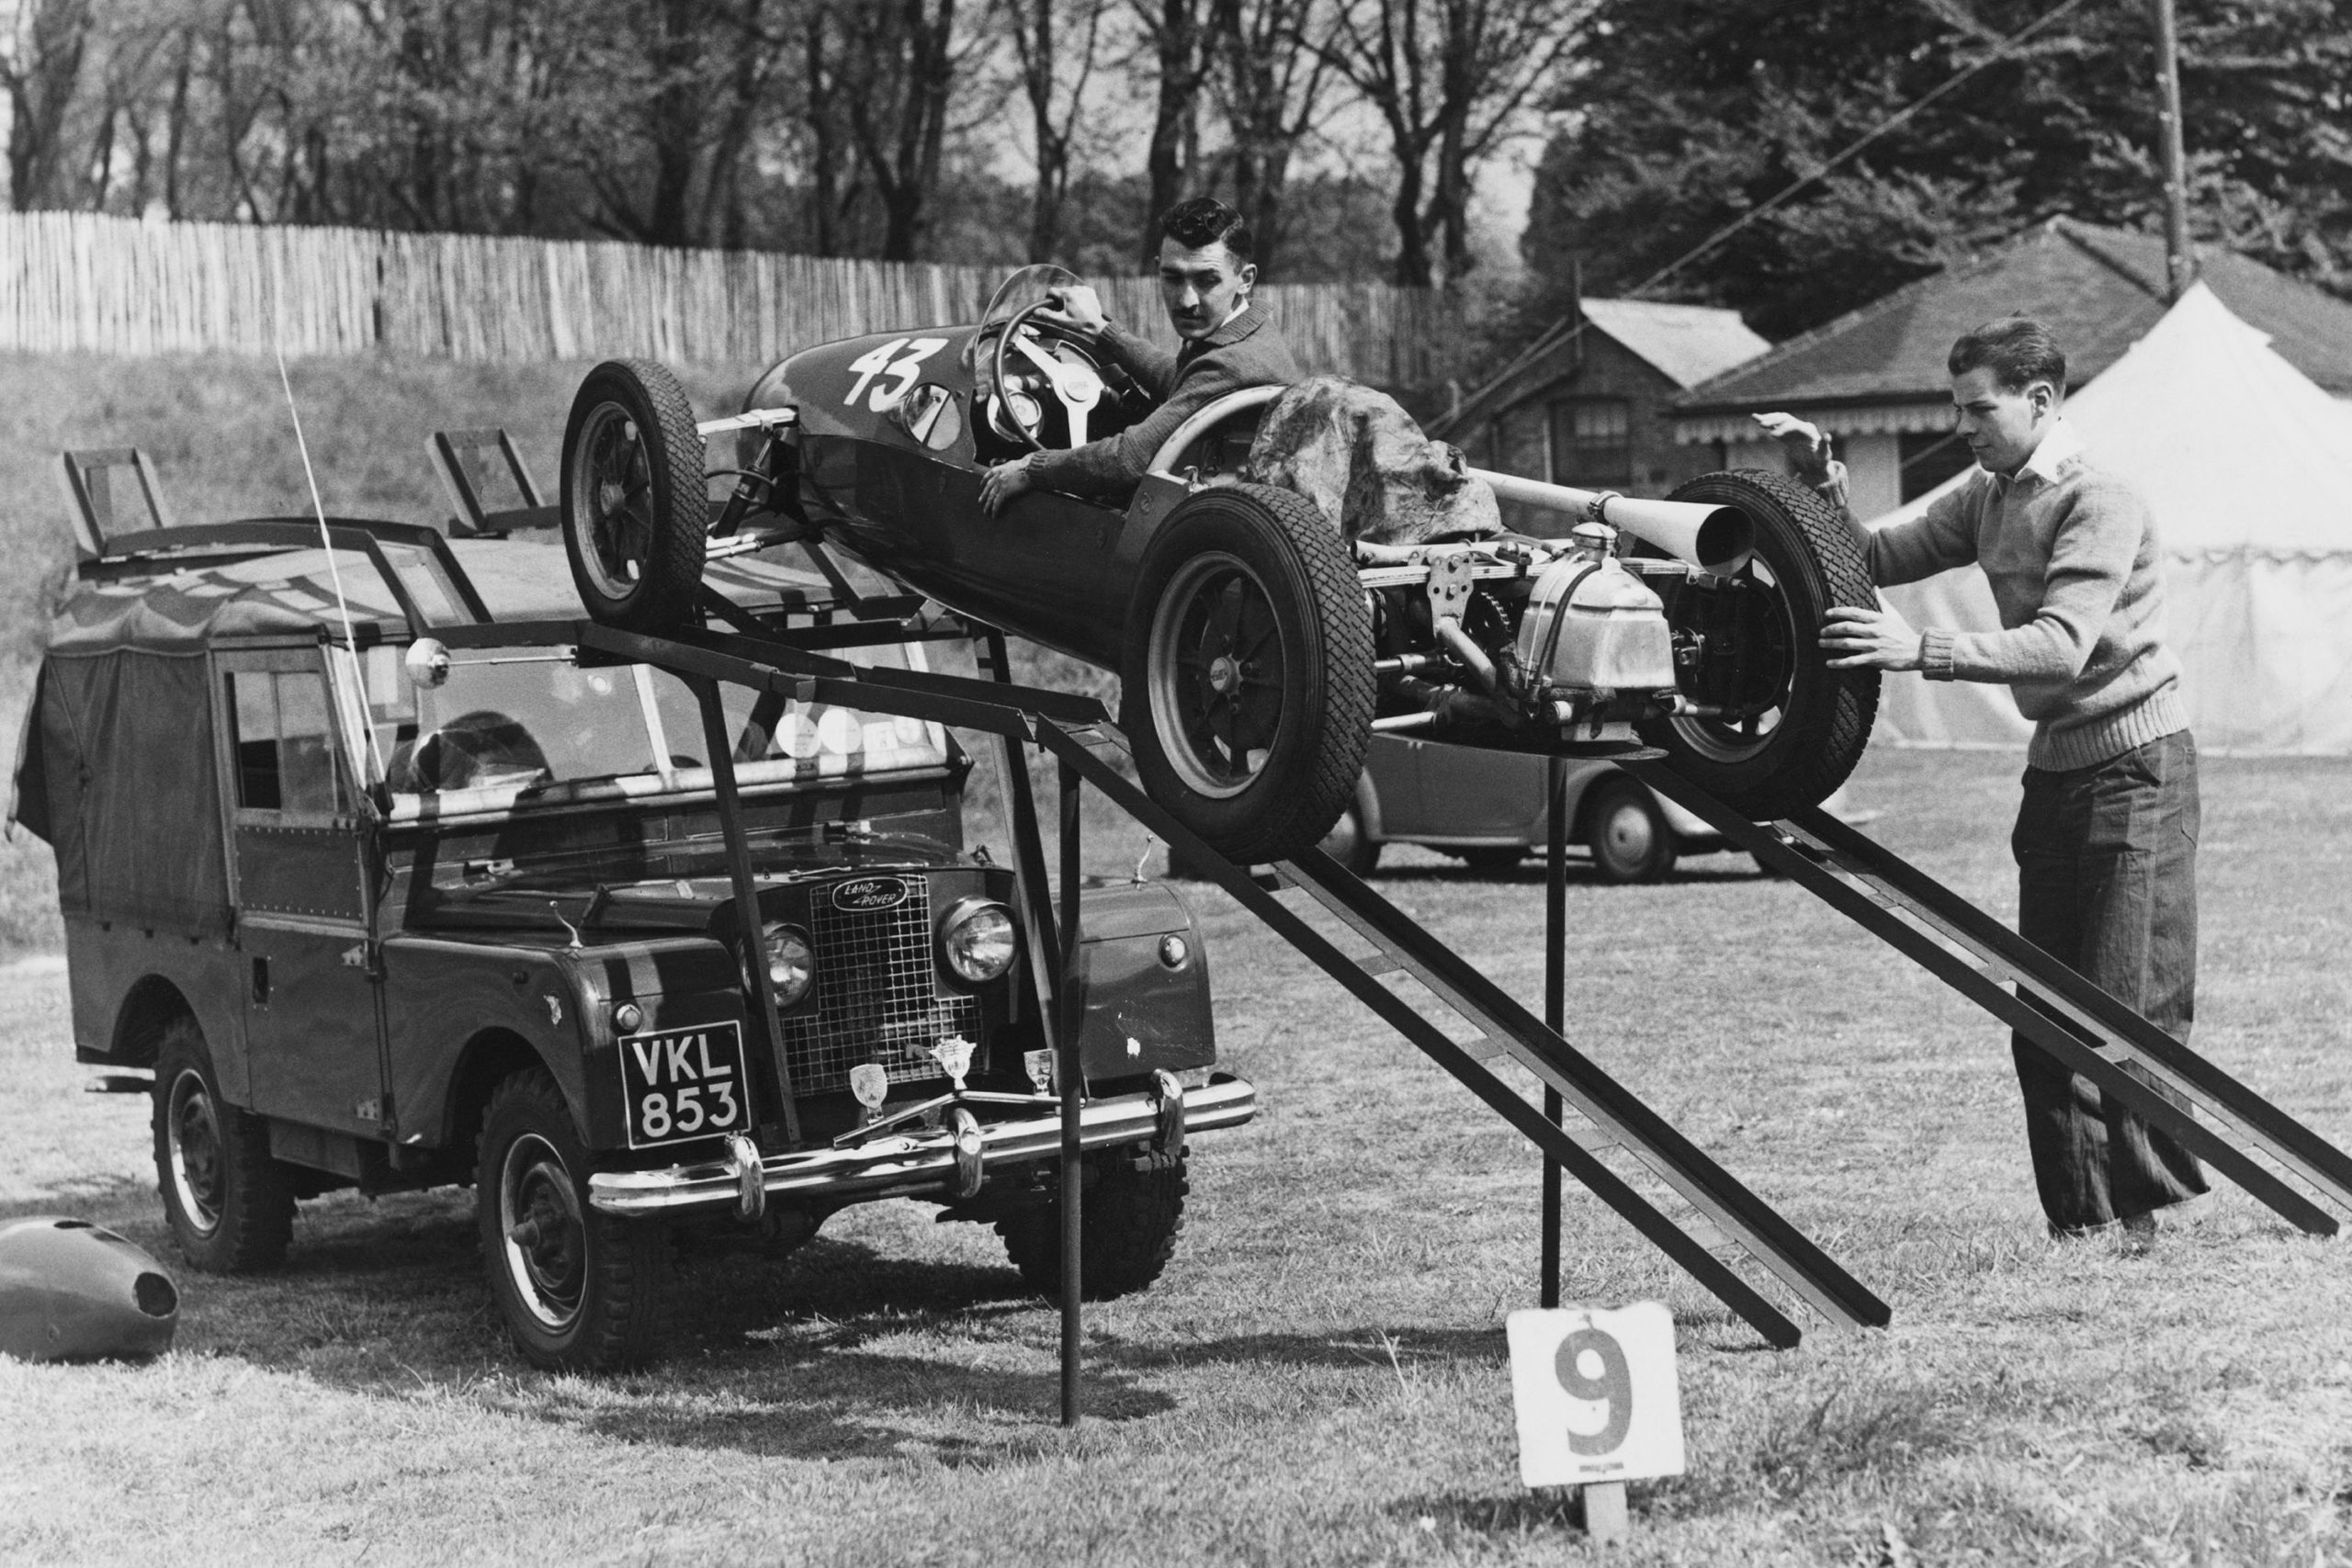 Stuart-Lewis-Evans-unloads-his-Cooper-500-F3-car-from-the-roof-of-a-Land-Rover-Series-I-in-1956